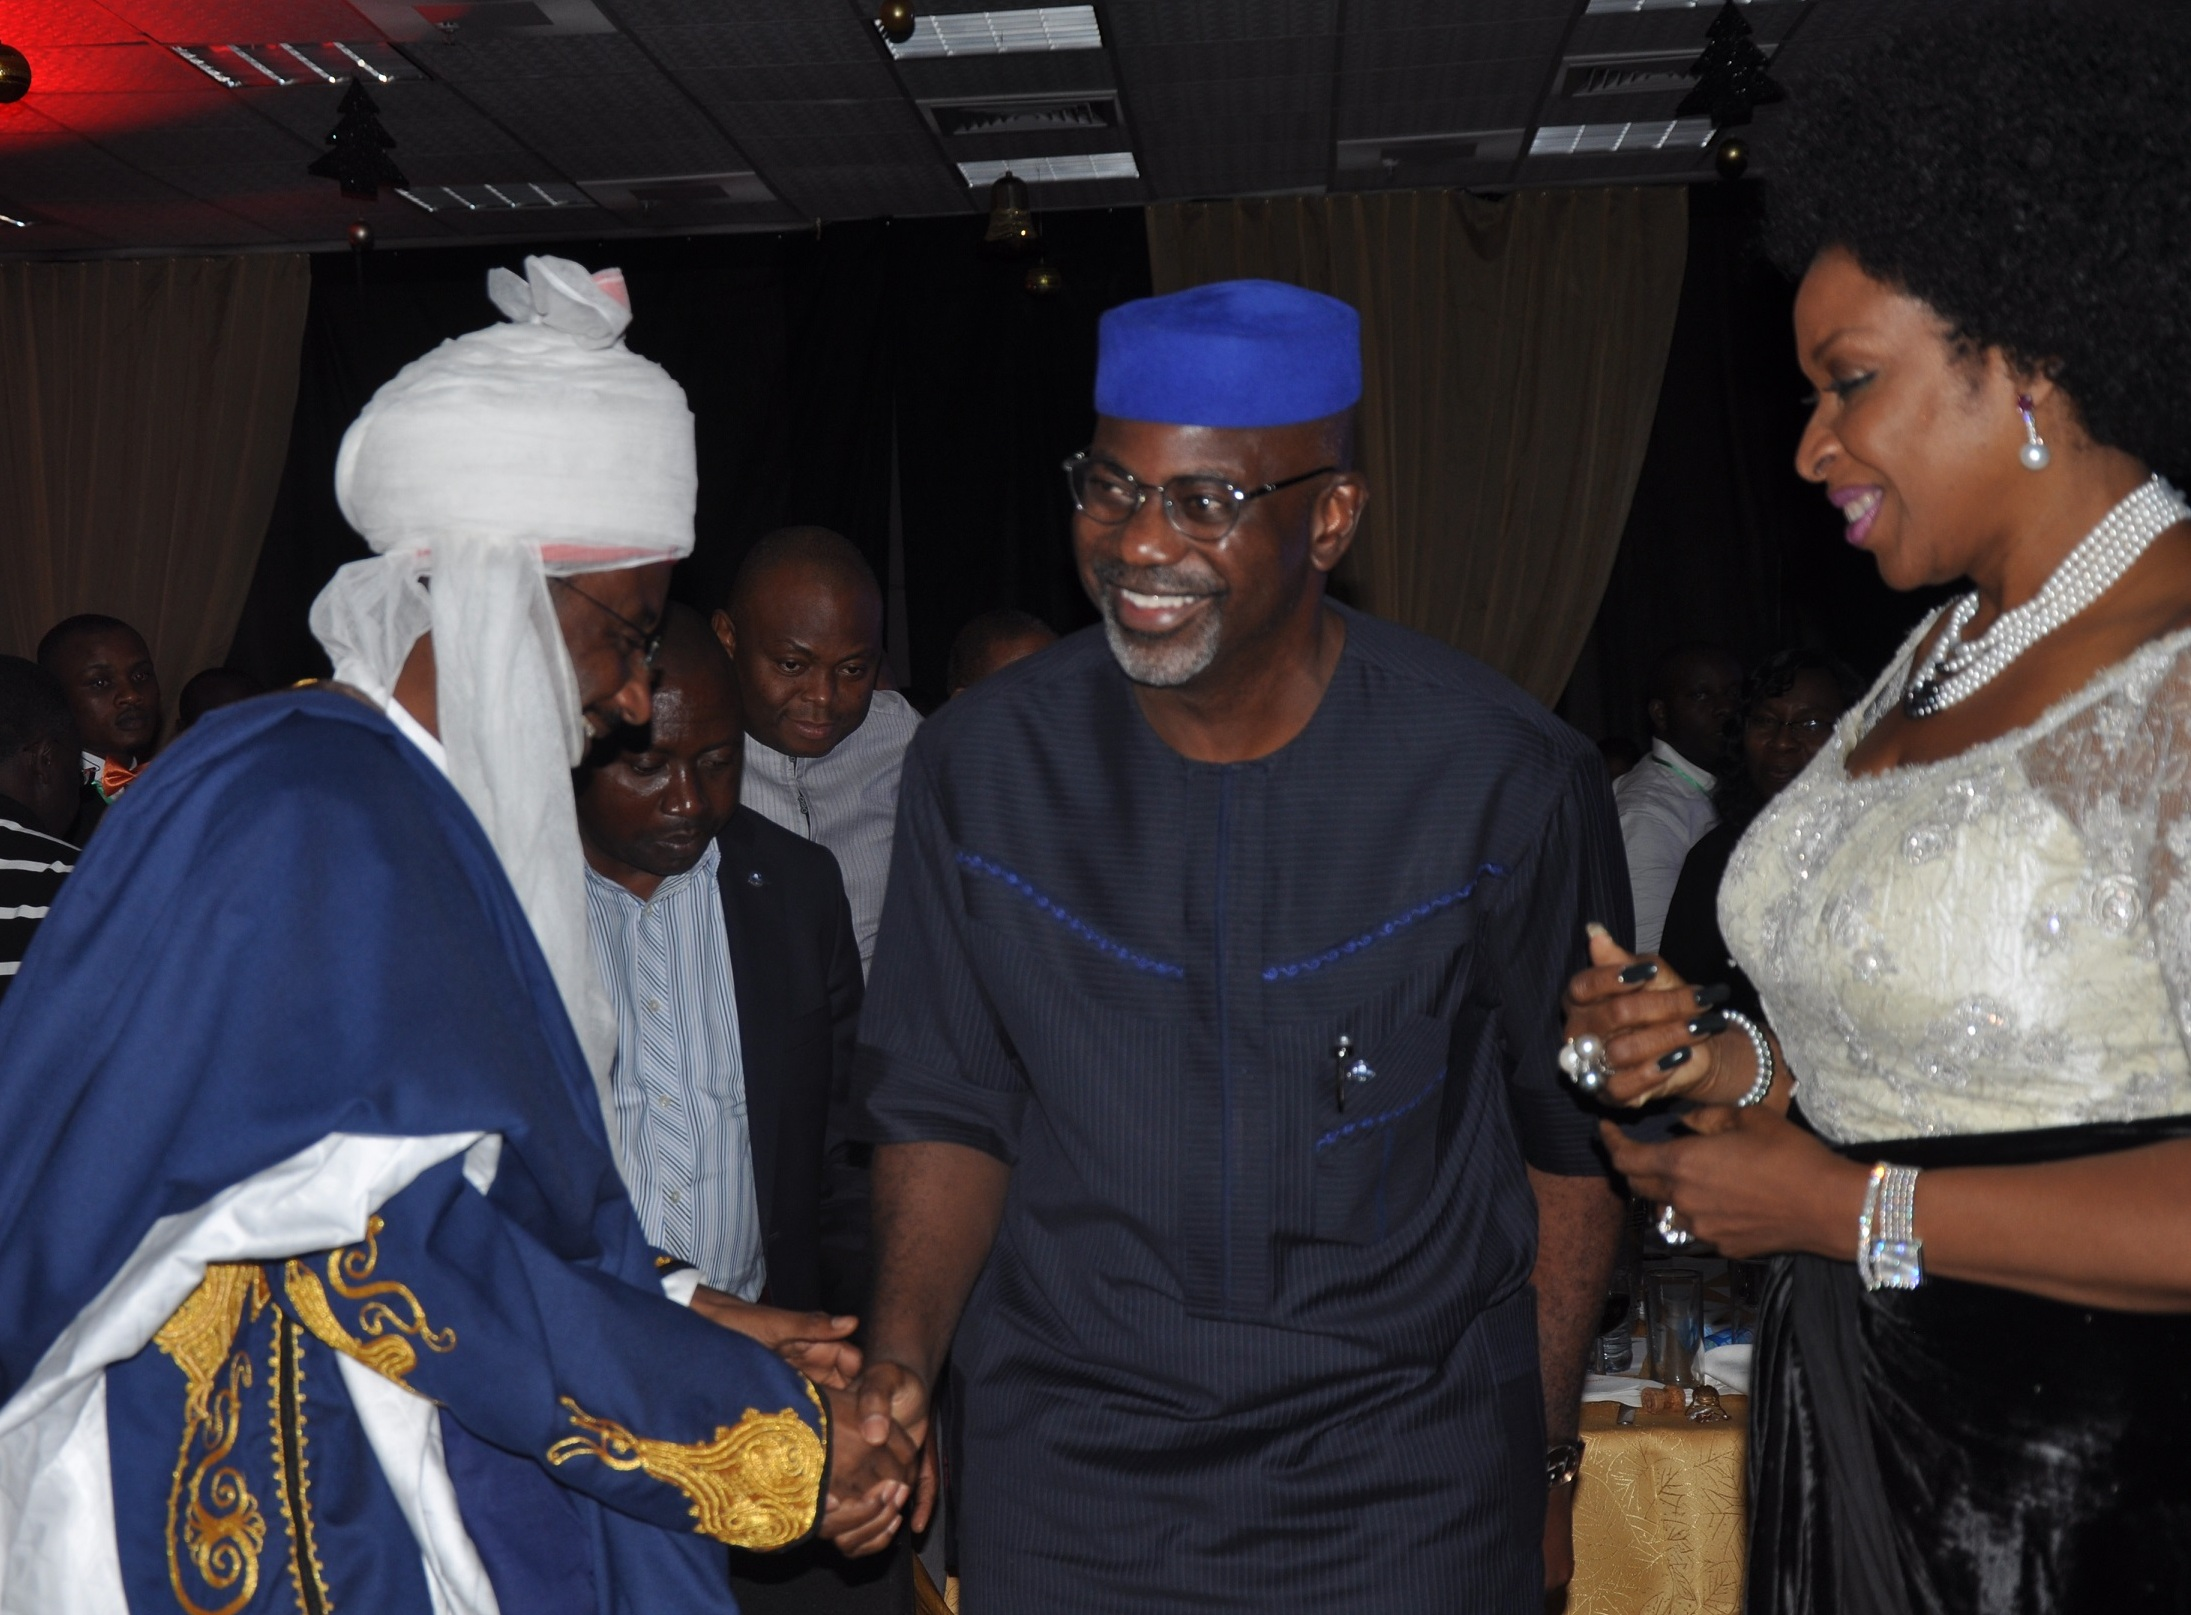 Central Bank Governor, Mallam Sanusi Lamido Sanusi, welcoming Governor Liyel Imoke of Cross River and wife Obioma to the Bankers' Committee Gala night at the end of the body's annual retreat in Calabar, weekend